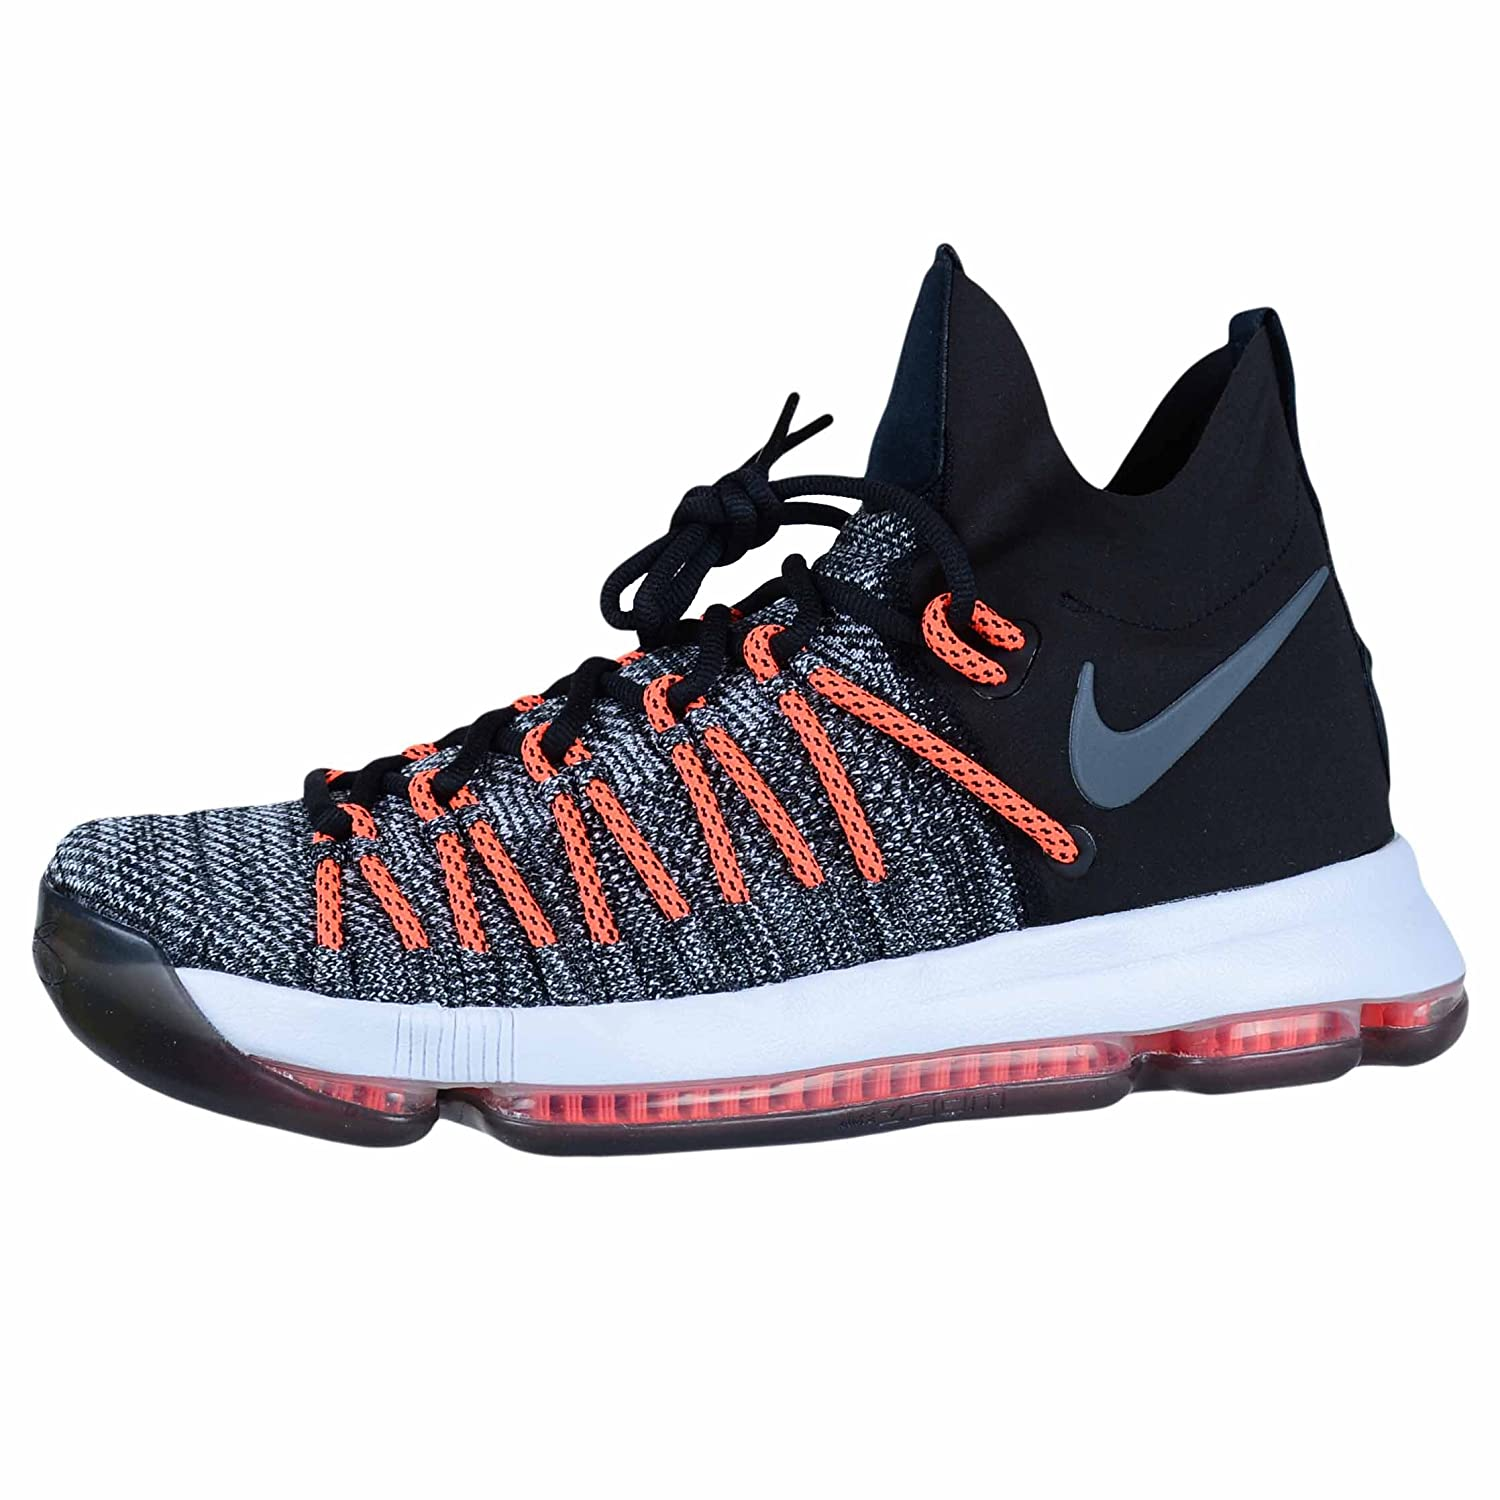 new product 7a8c0 2065d Amazon.com   Nike Zoom KD9 Elite Mens Basketball-Shoes 878637-010 10 - Black White-Dark  Grey-Hyper Orange   Basketball